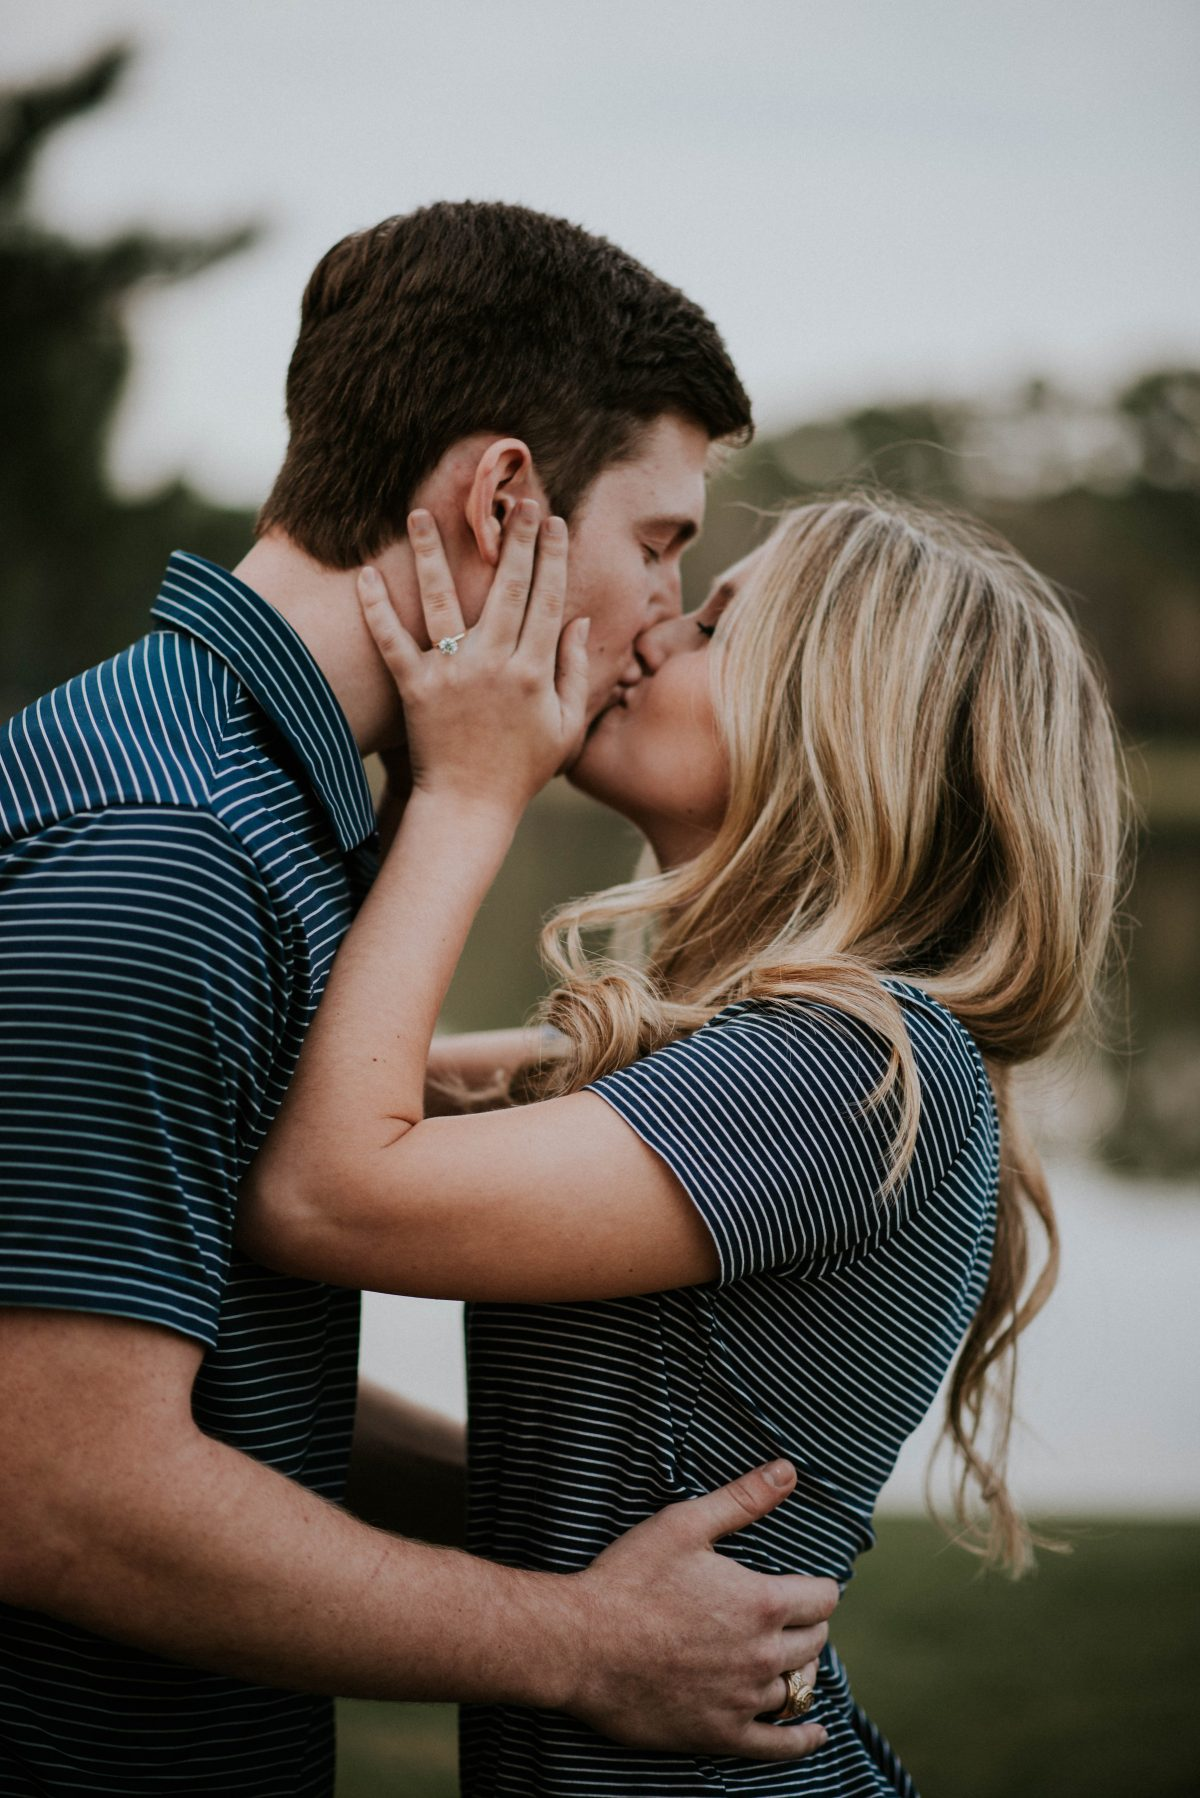 Image 2 of 9 Funny Ways to Get Him to Propose